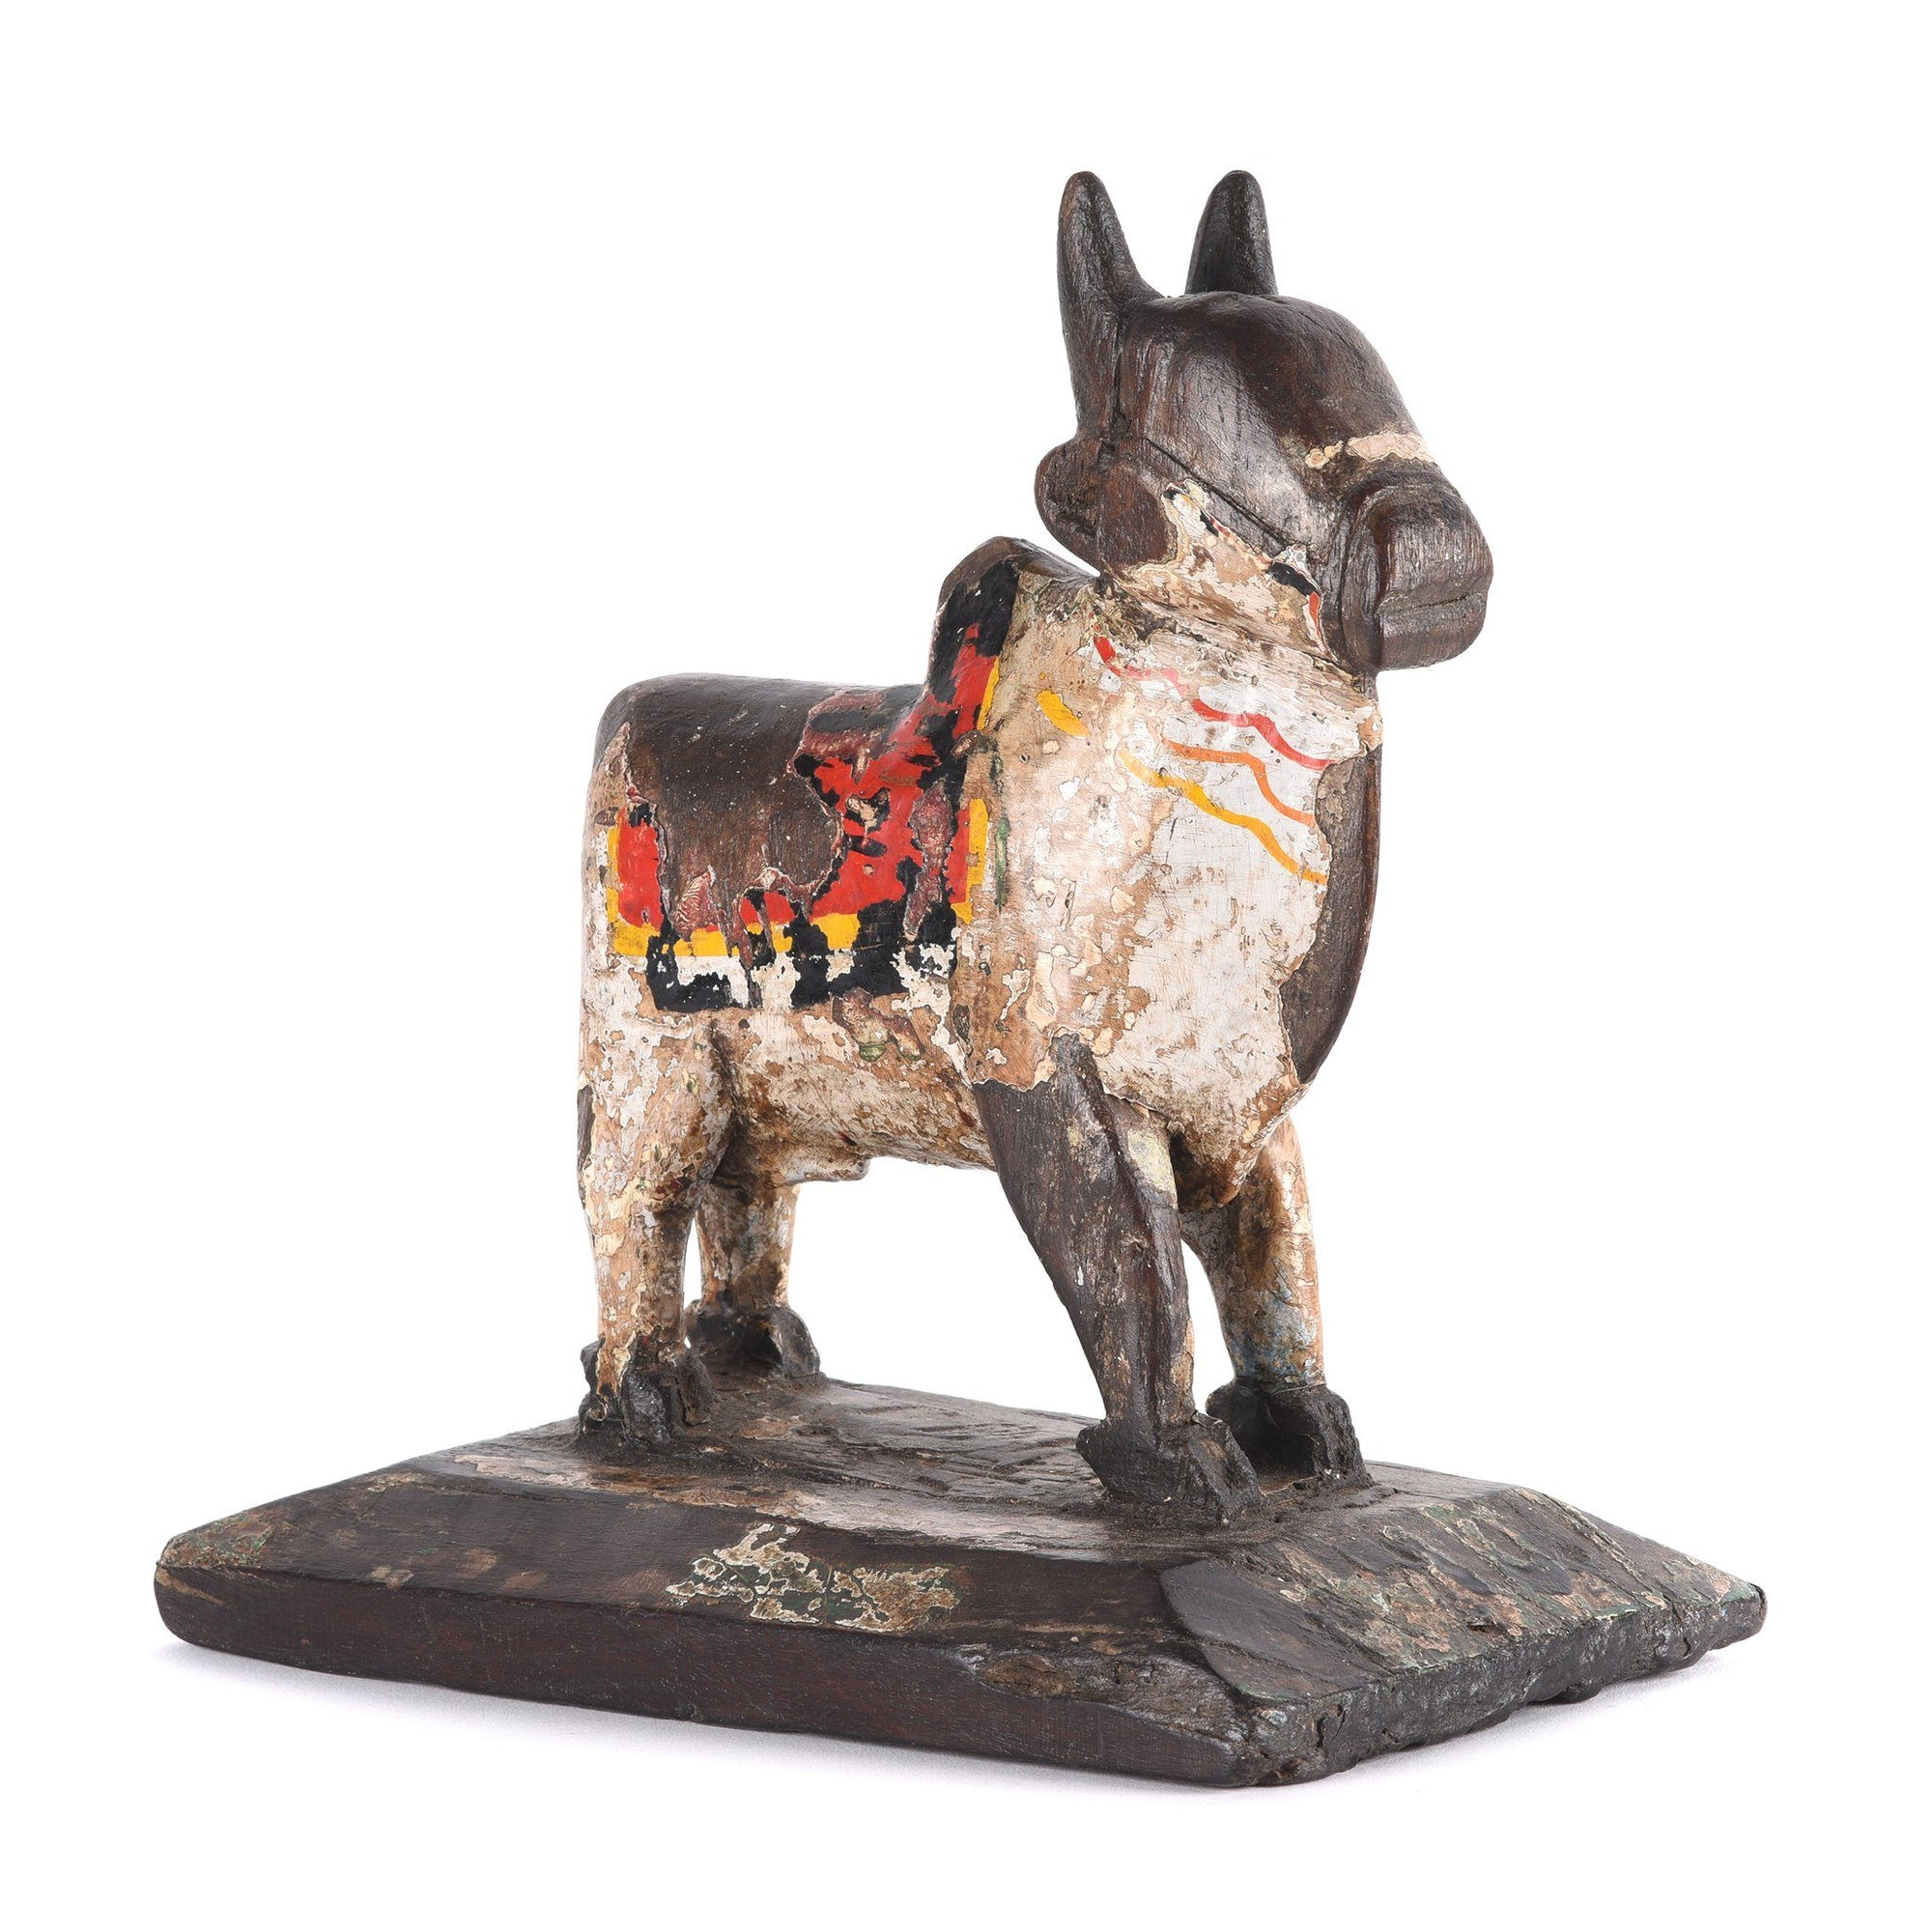 Painted Indian Nandi Bull Figurine From Rajasthan - Ca 1920 | Indigo Antiques